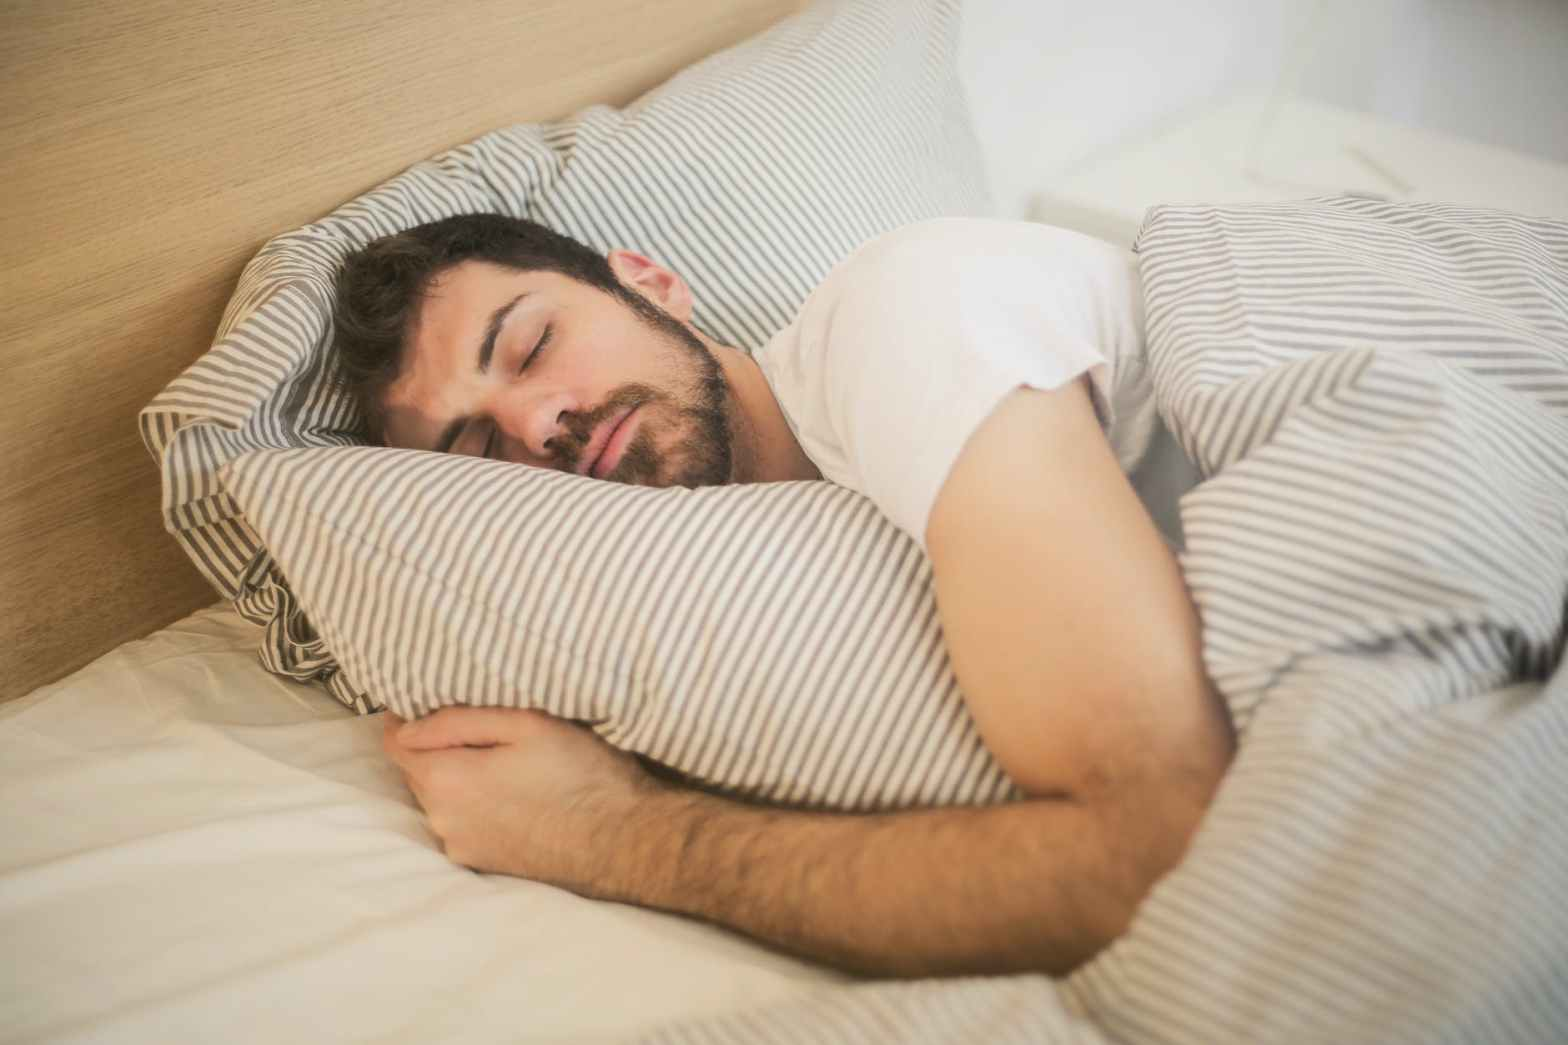 photo of sleeping man